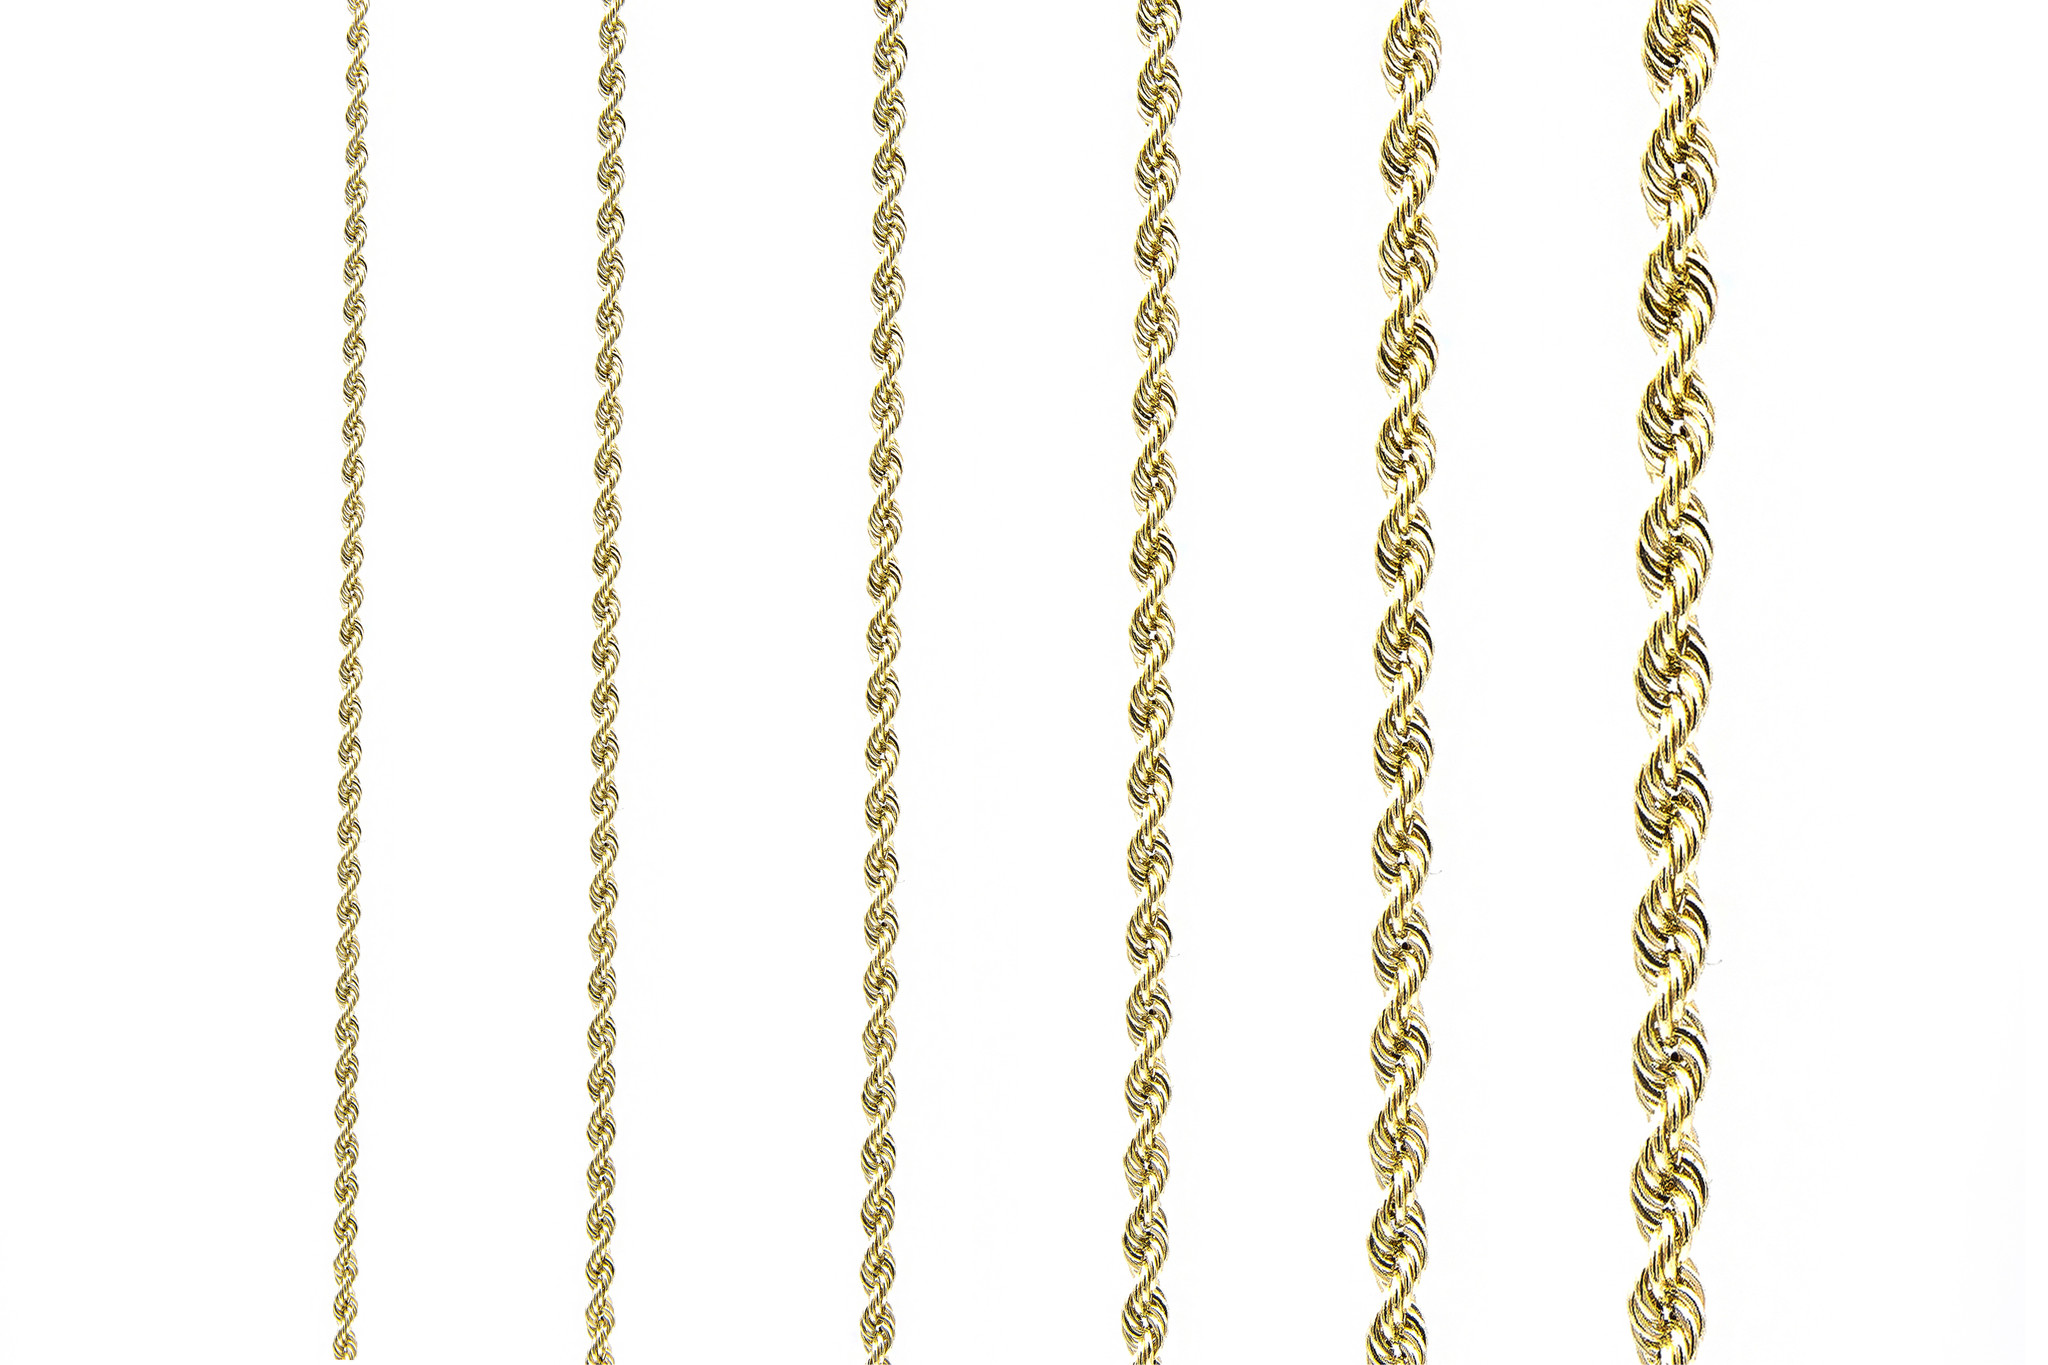 Rope Chain 14k-3mm-3